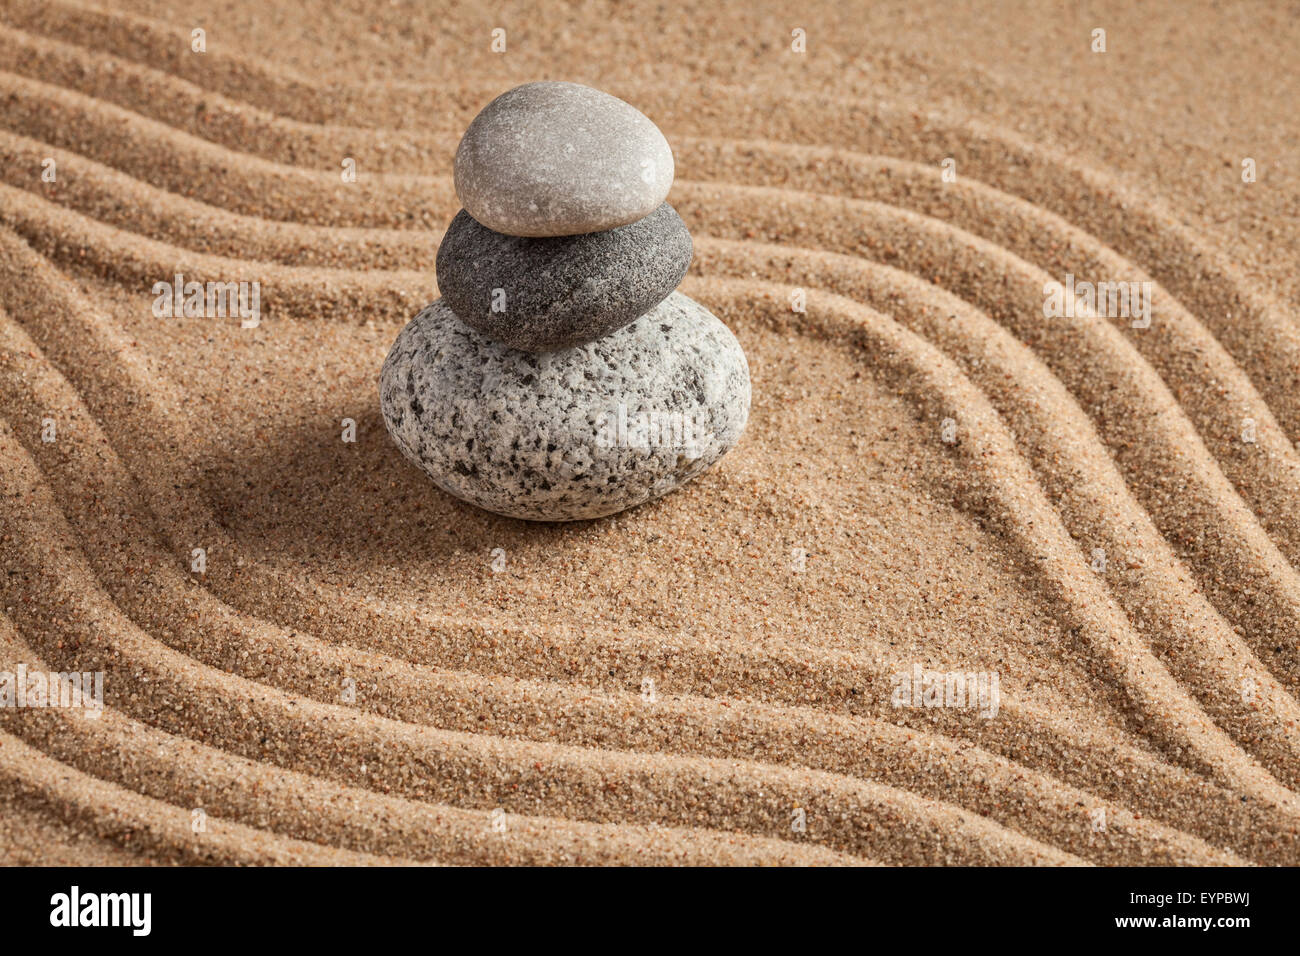 Peaceful Zen Garden Raked Sand Stock Photos & Peaceful Zen Garden ...